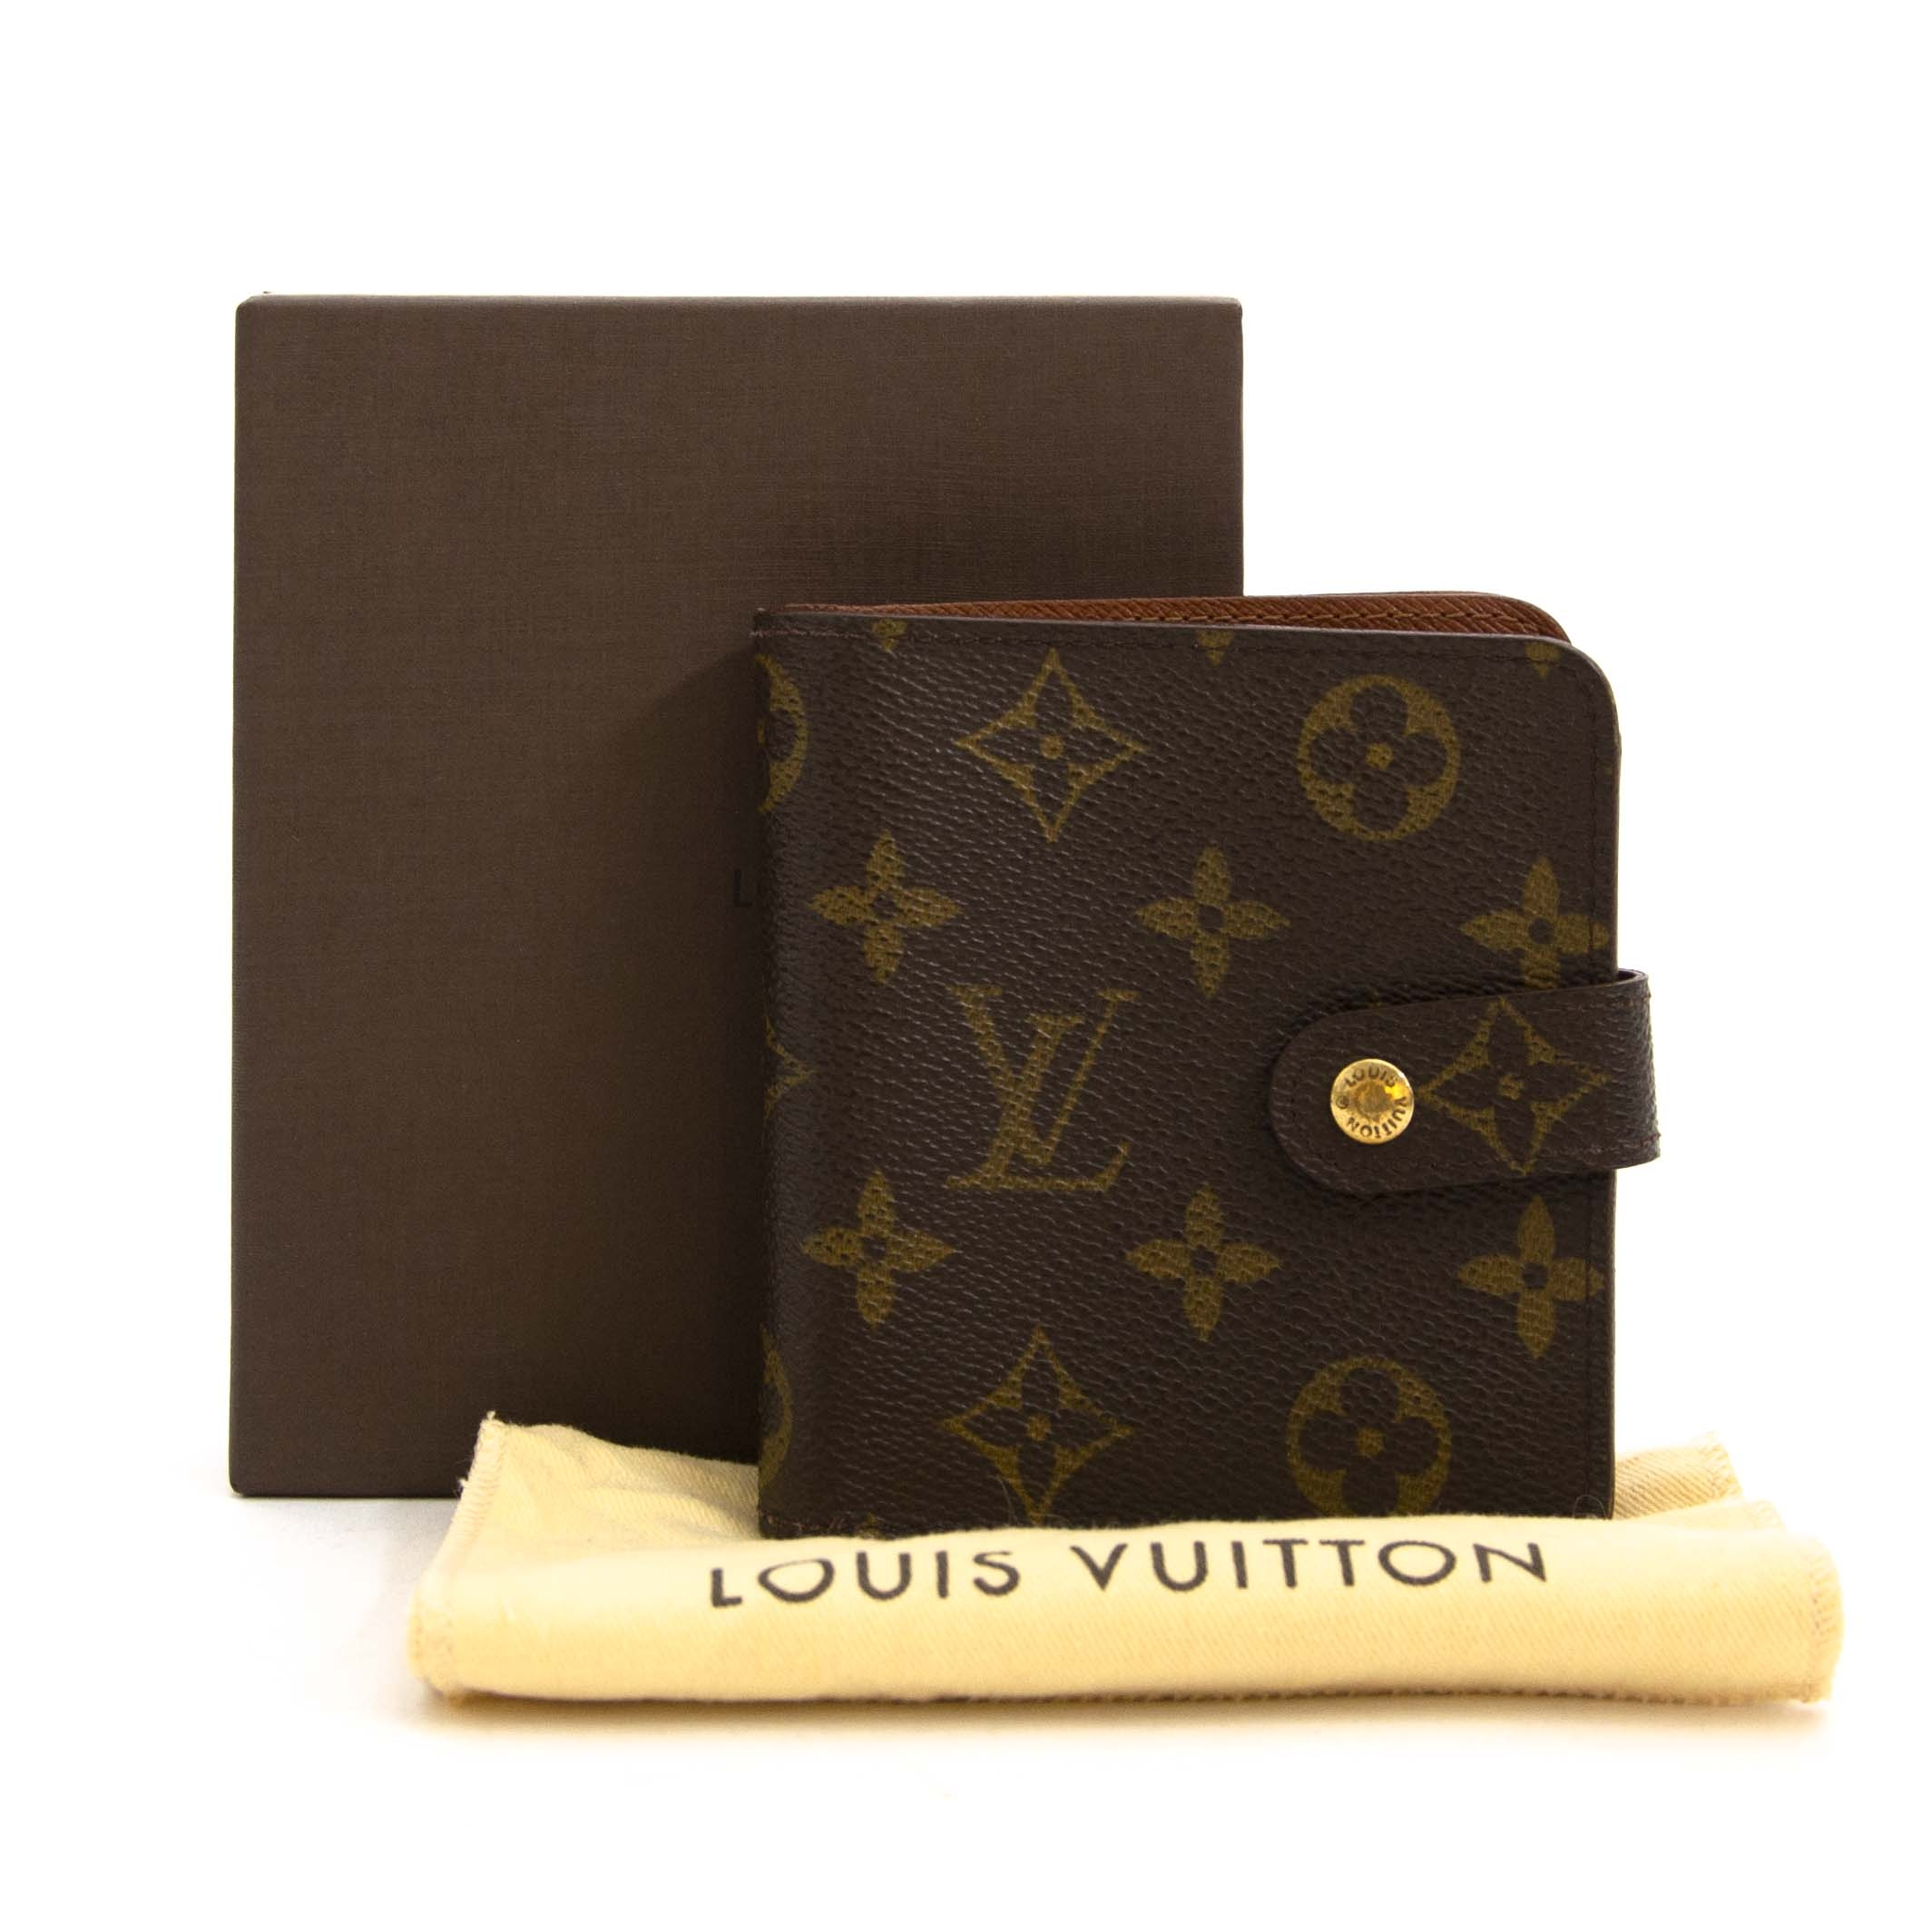 607f956dda2 Labellov Louis Vuitton Monogram Compact Zip Wallet ○ Buy and Sell Authentic  Luxury